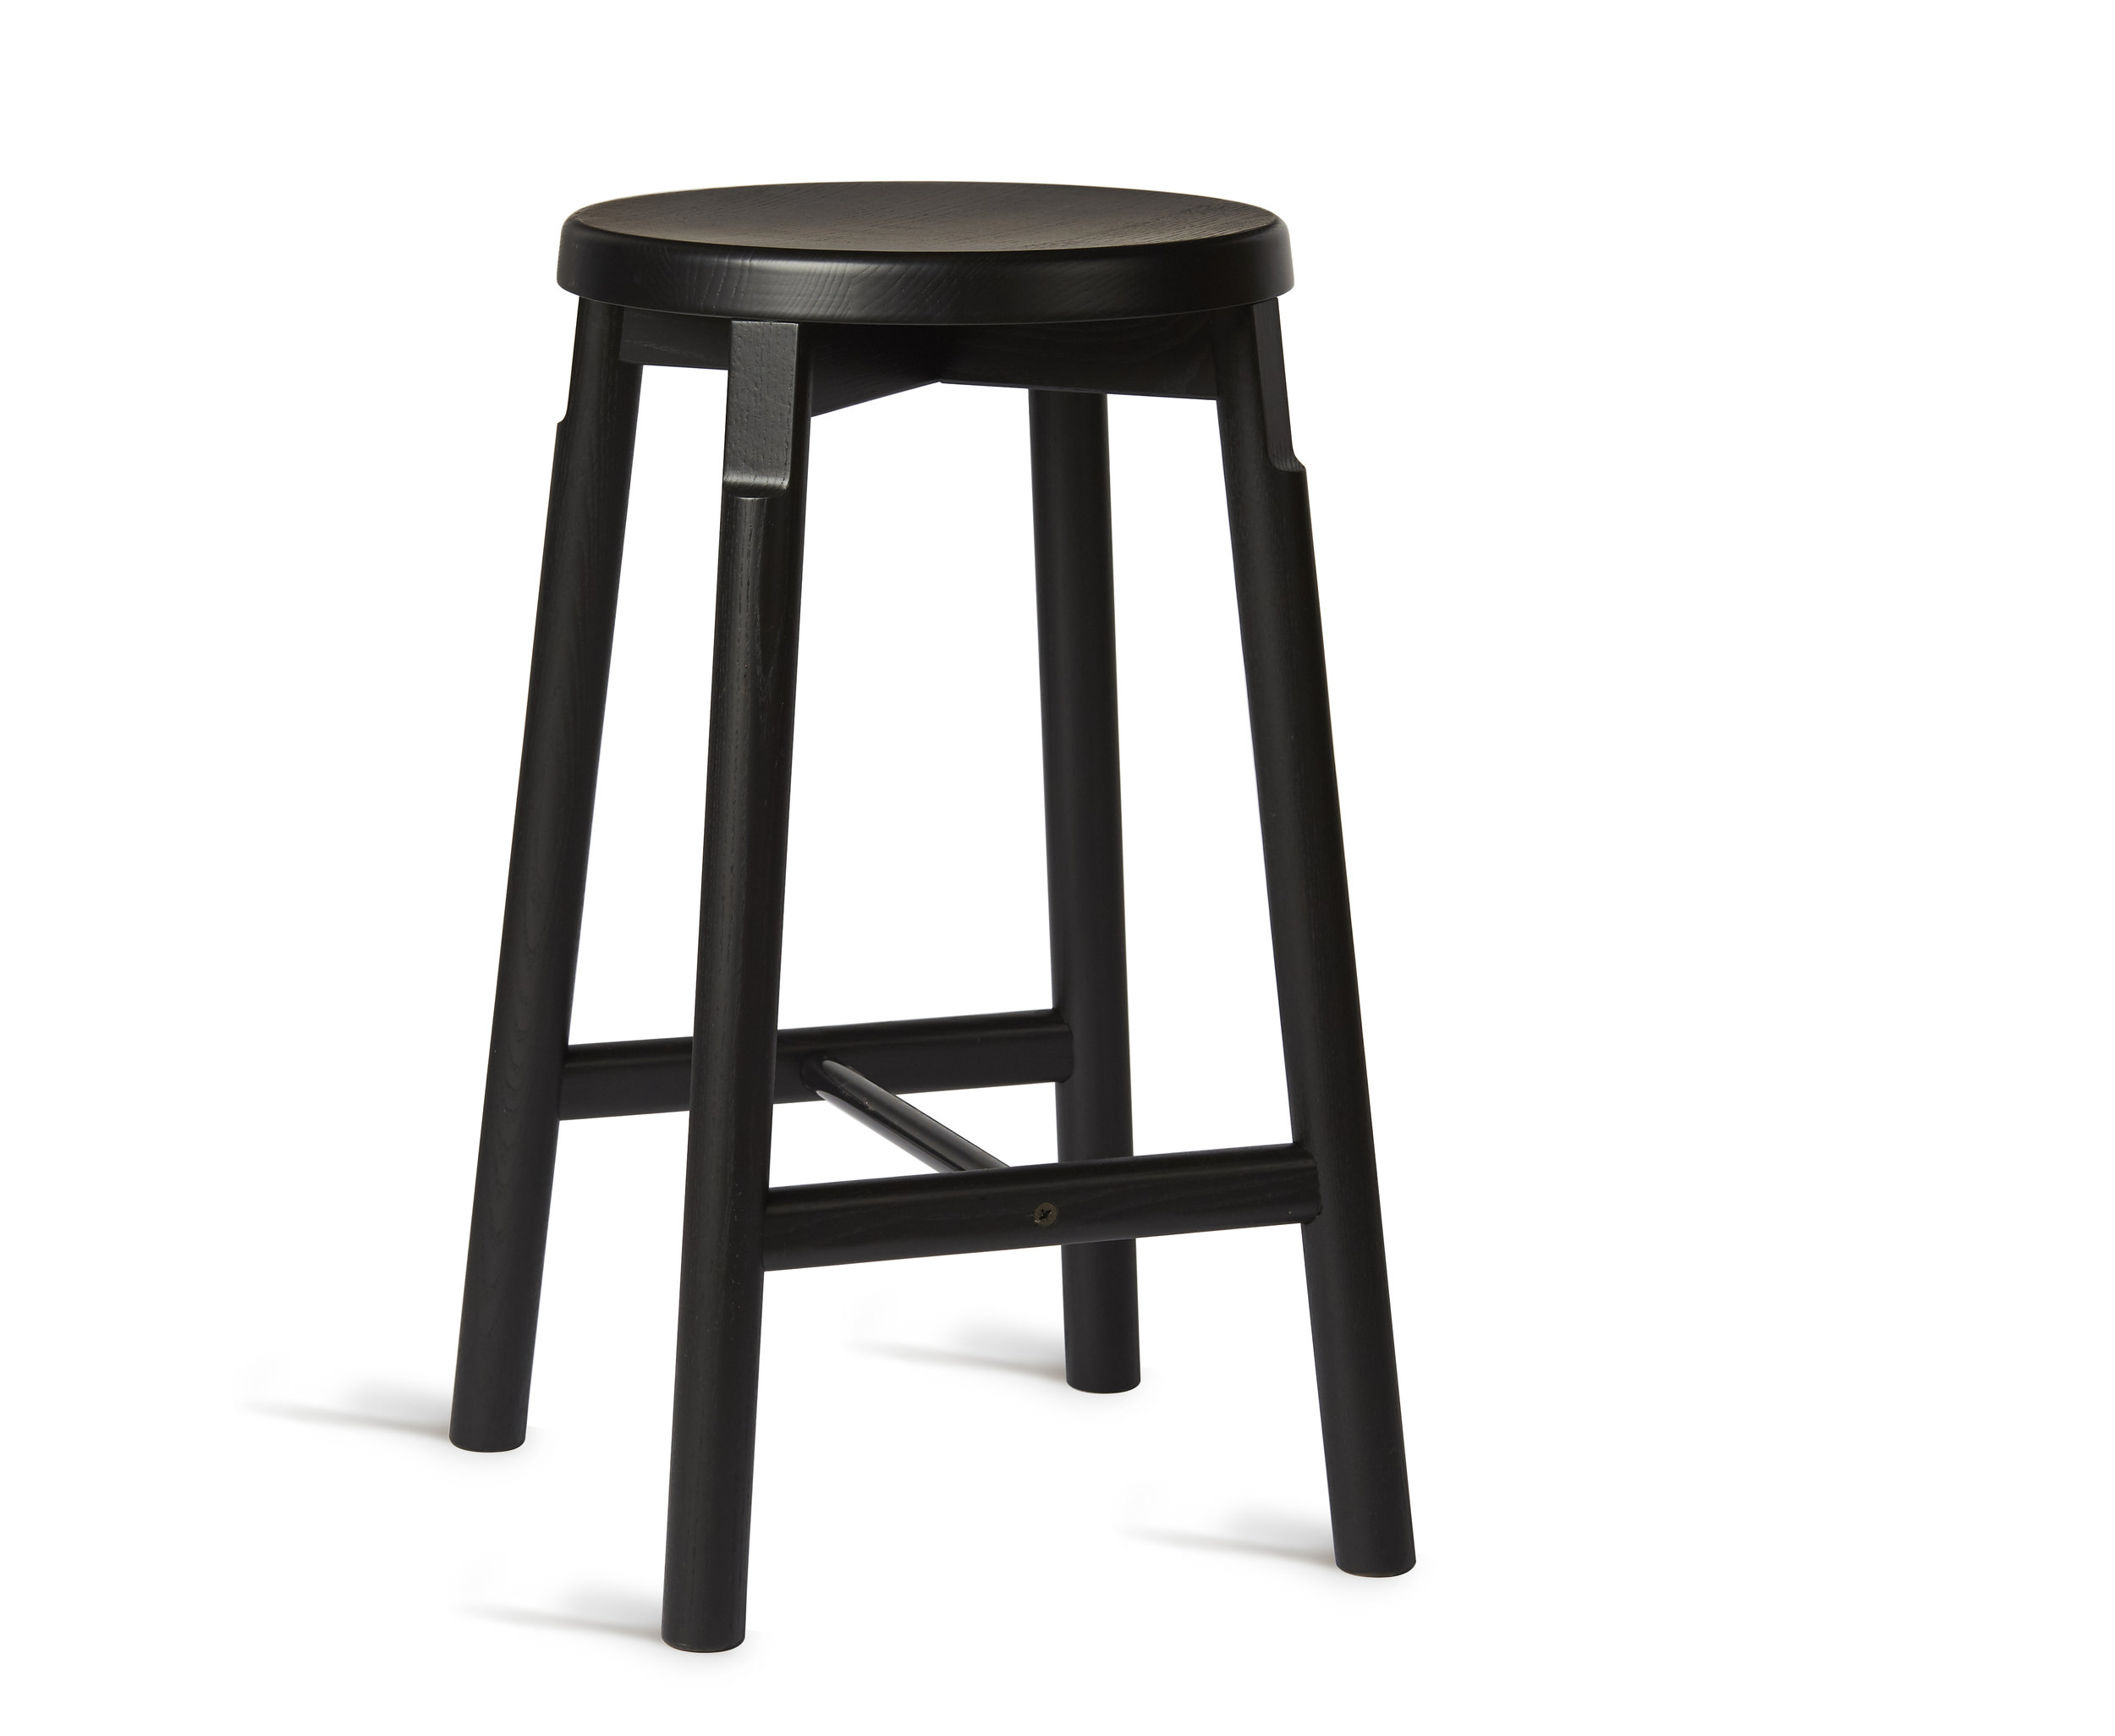 Barn Stool - Counter_3-4_Seamless.jpg